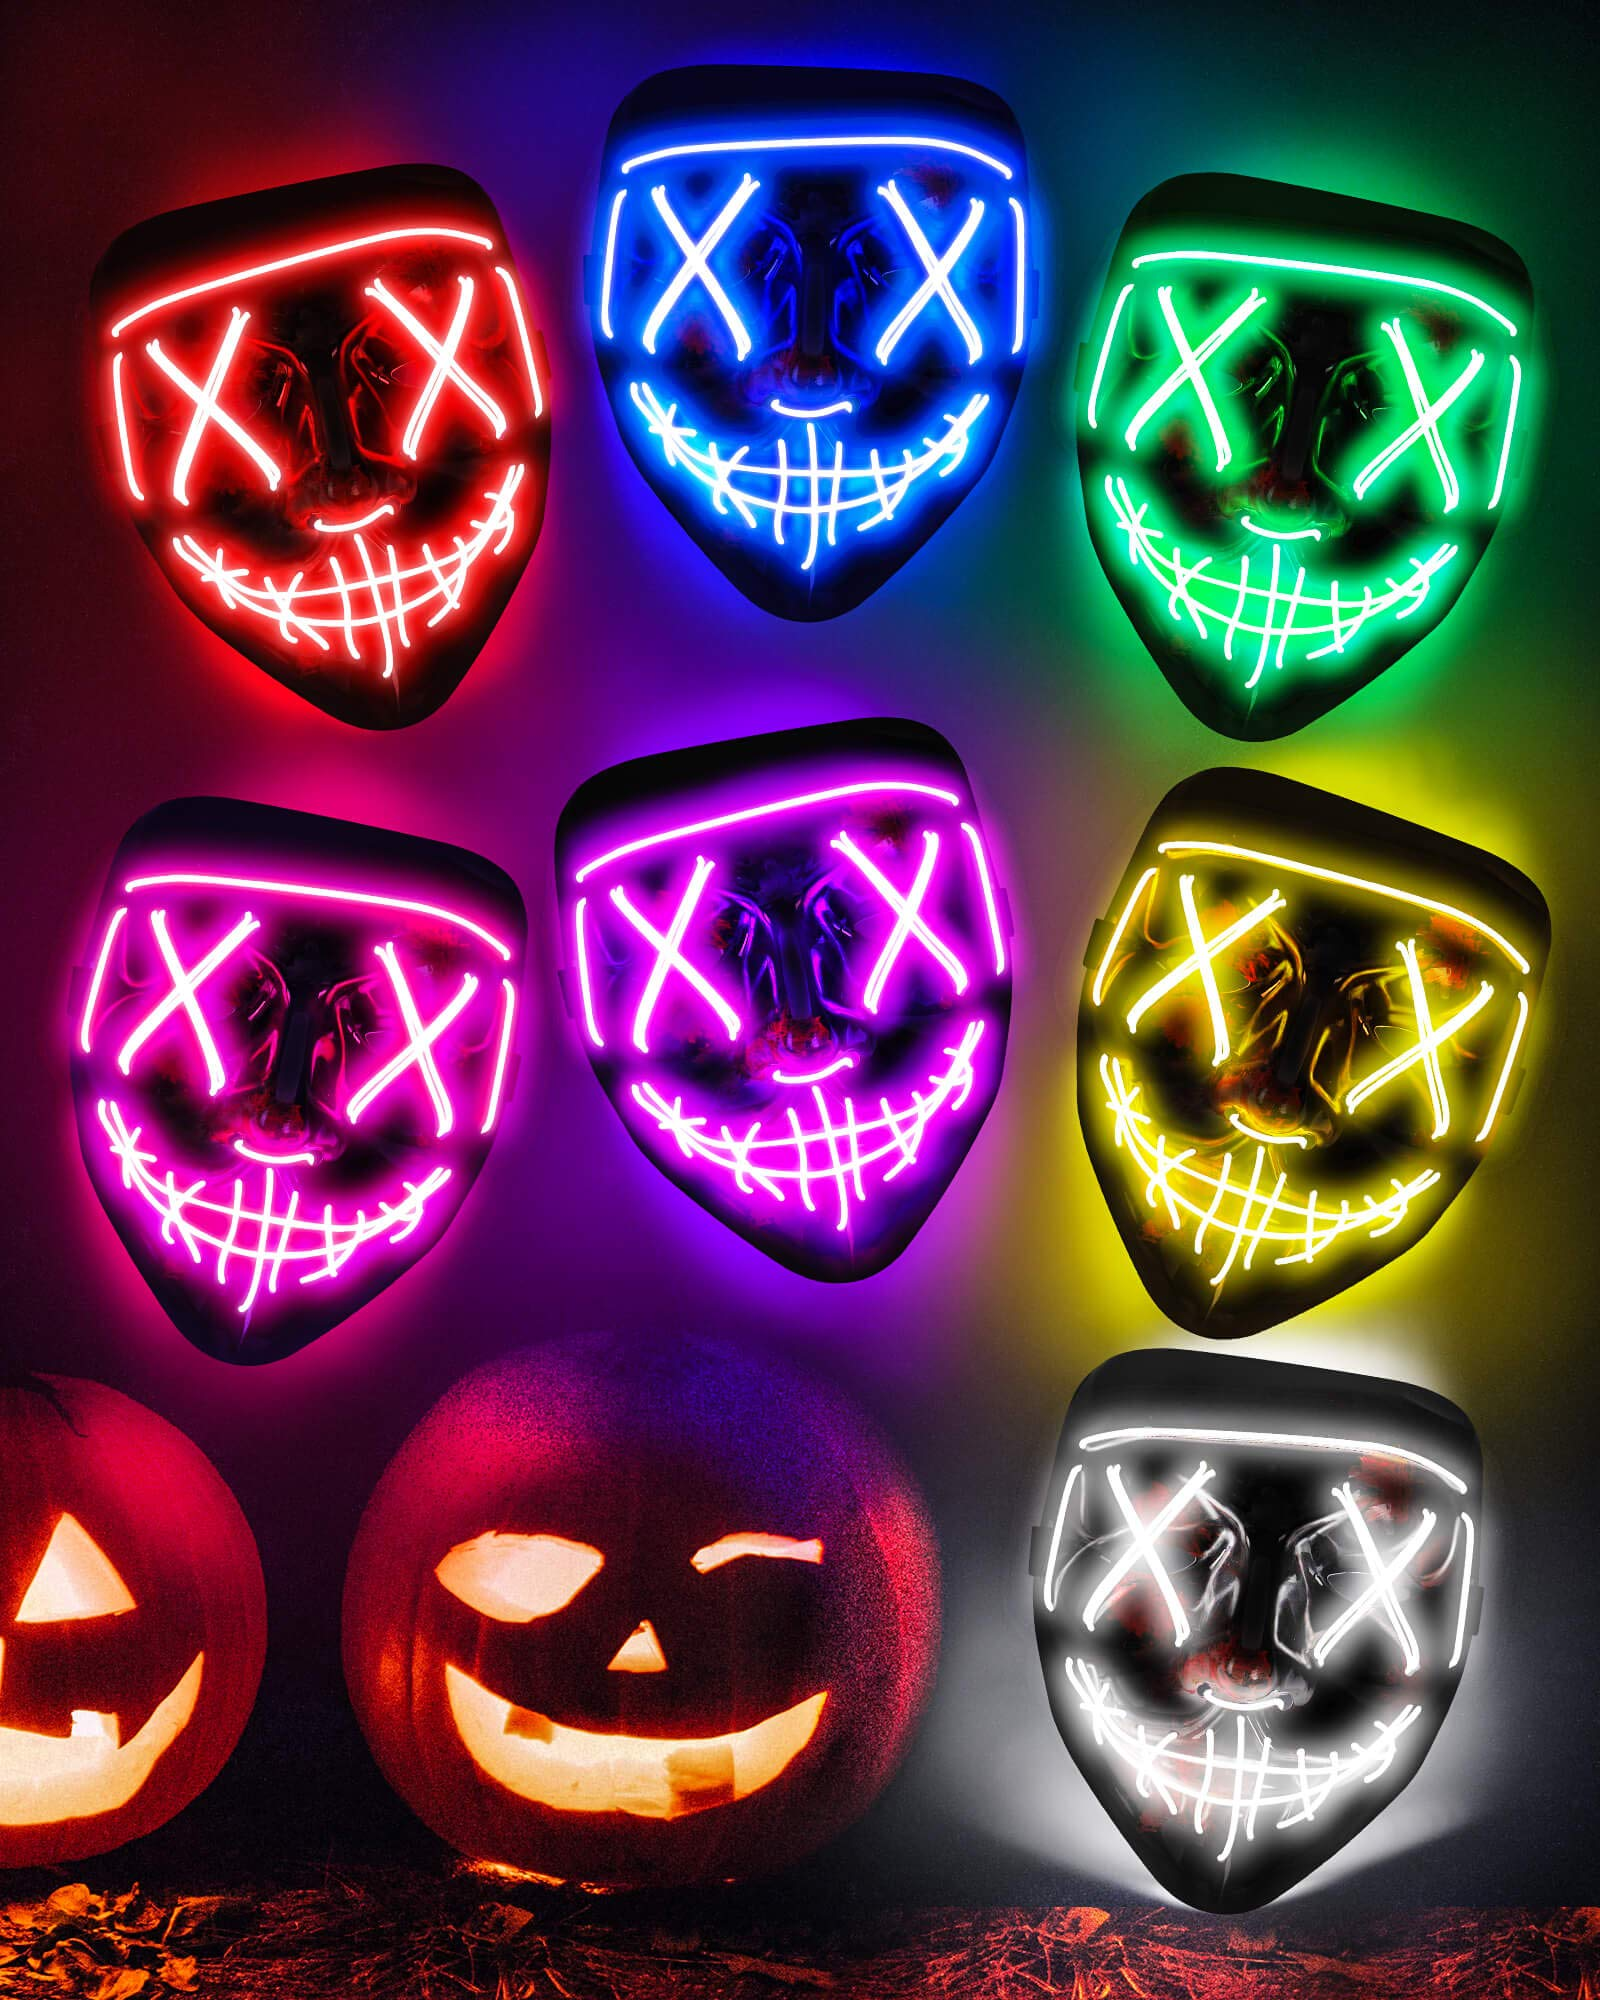 Sago Brothers Scary Halloween Mask LED Light up Mask Cosplay Glowing in The Dark Mask Costume 3 Lighting Modes Halloween Face Masks for Men Women Kids Blue